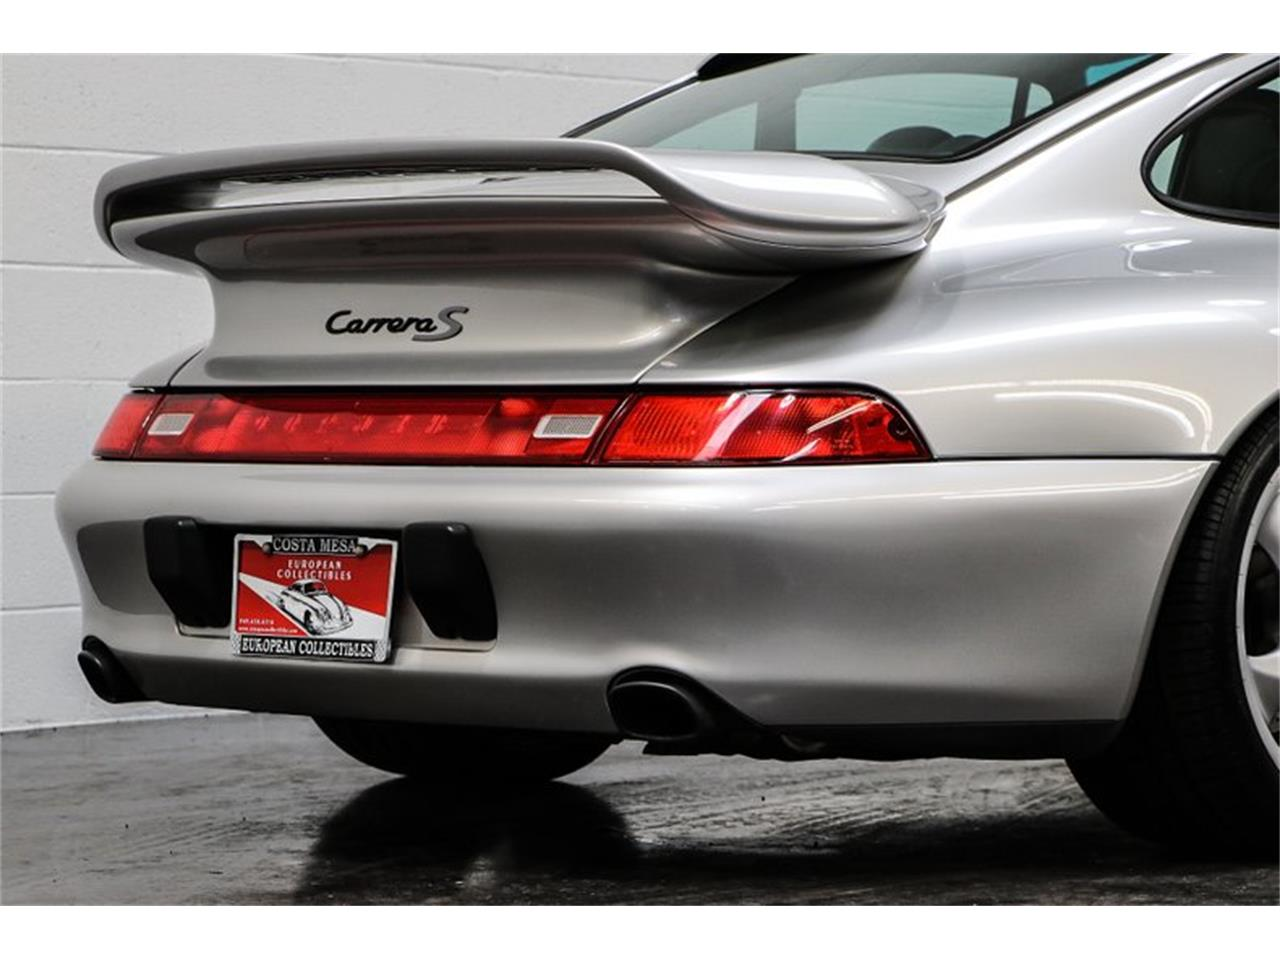 1998 Porsche 911 for sale in Costa Mesa, CA – photo 9